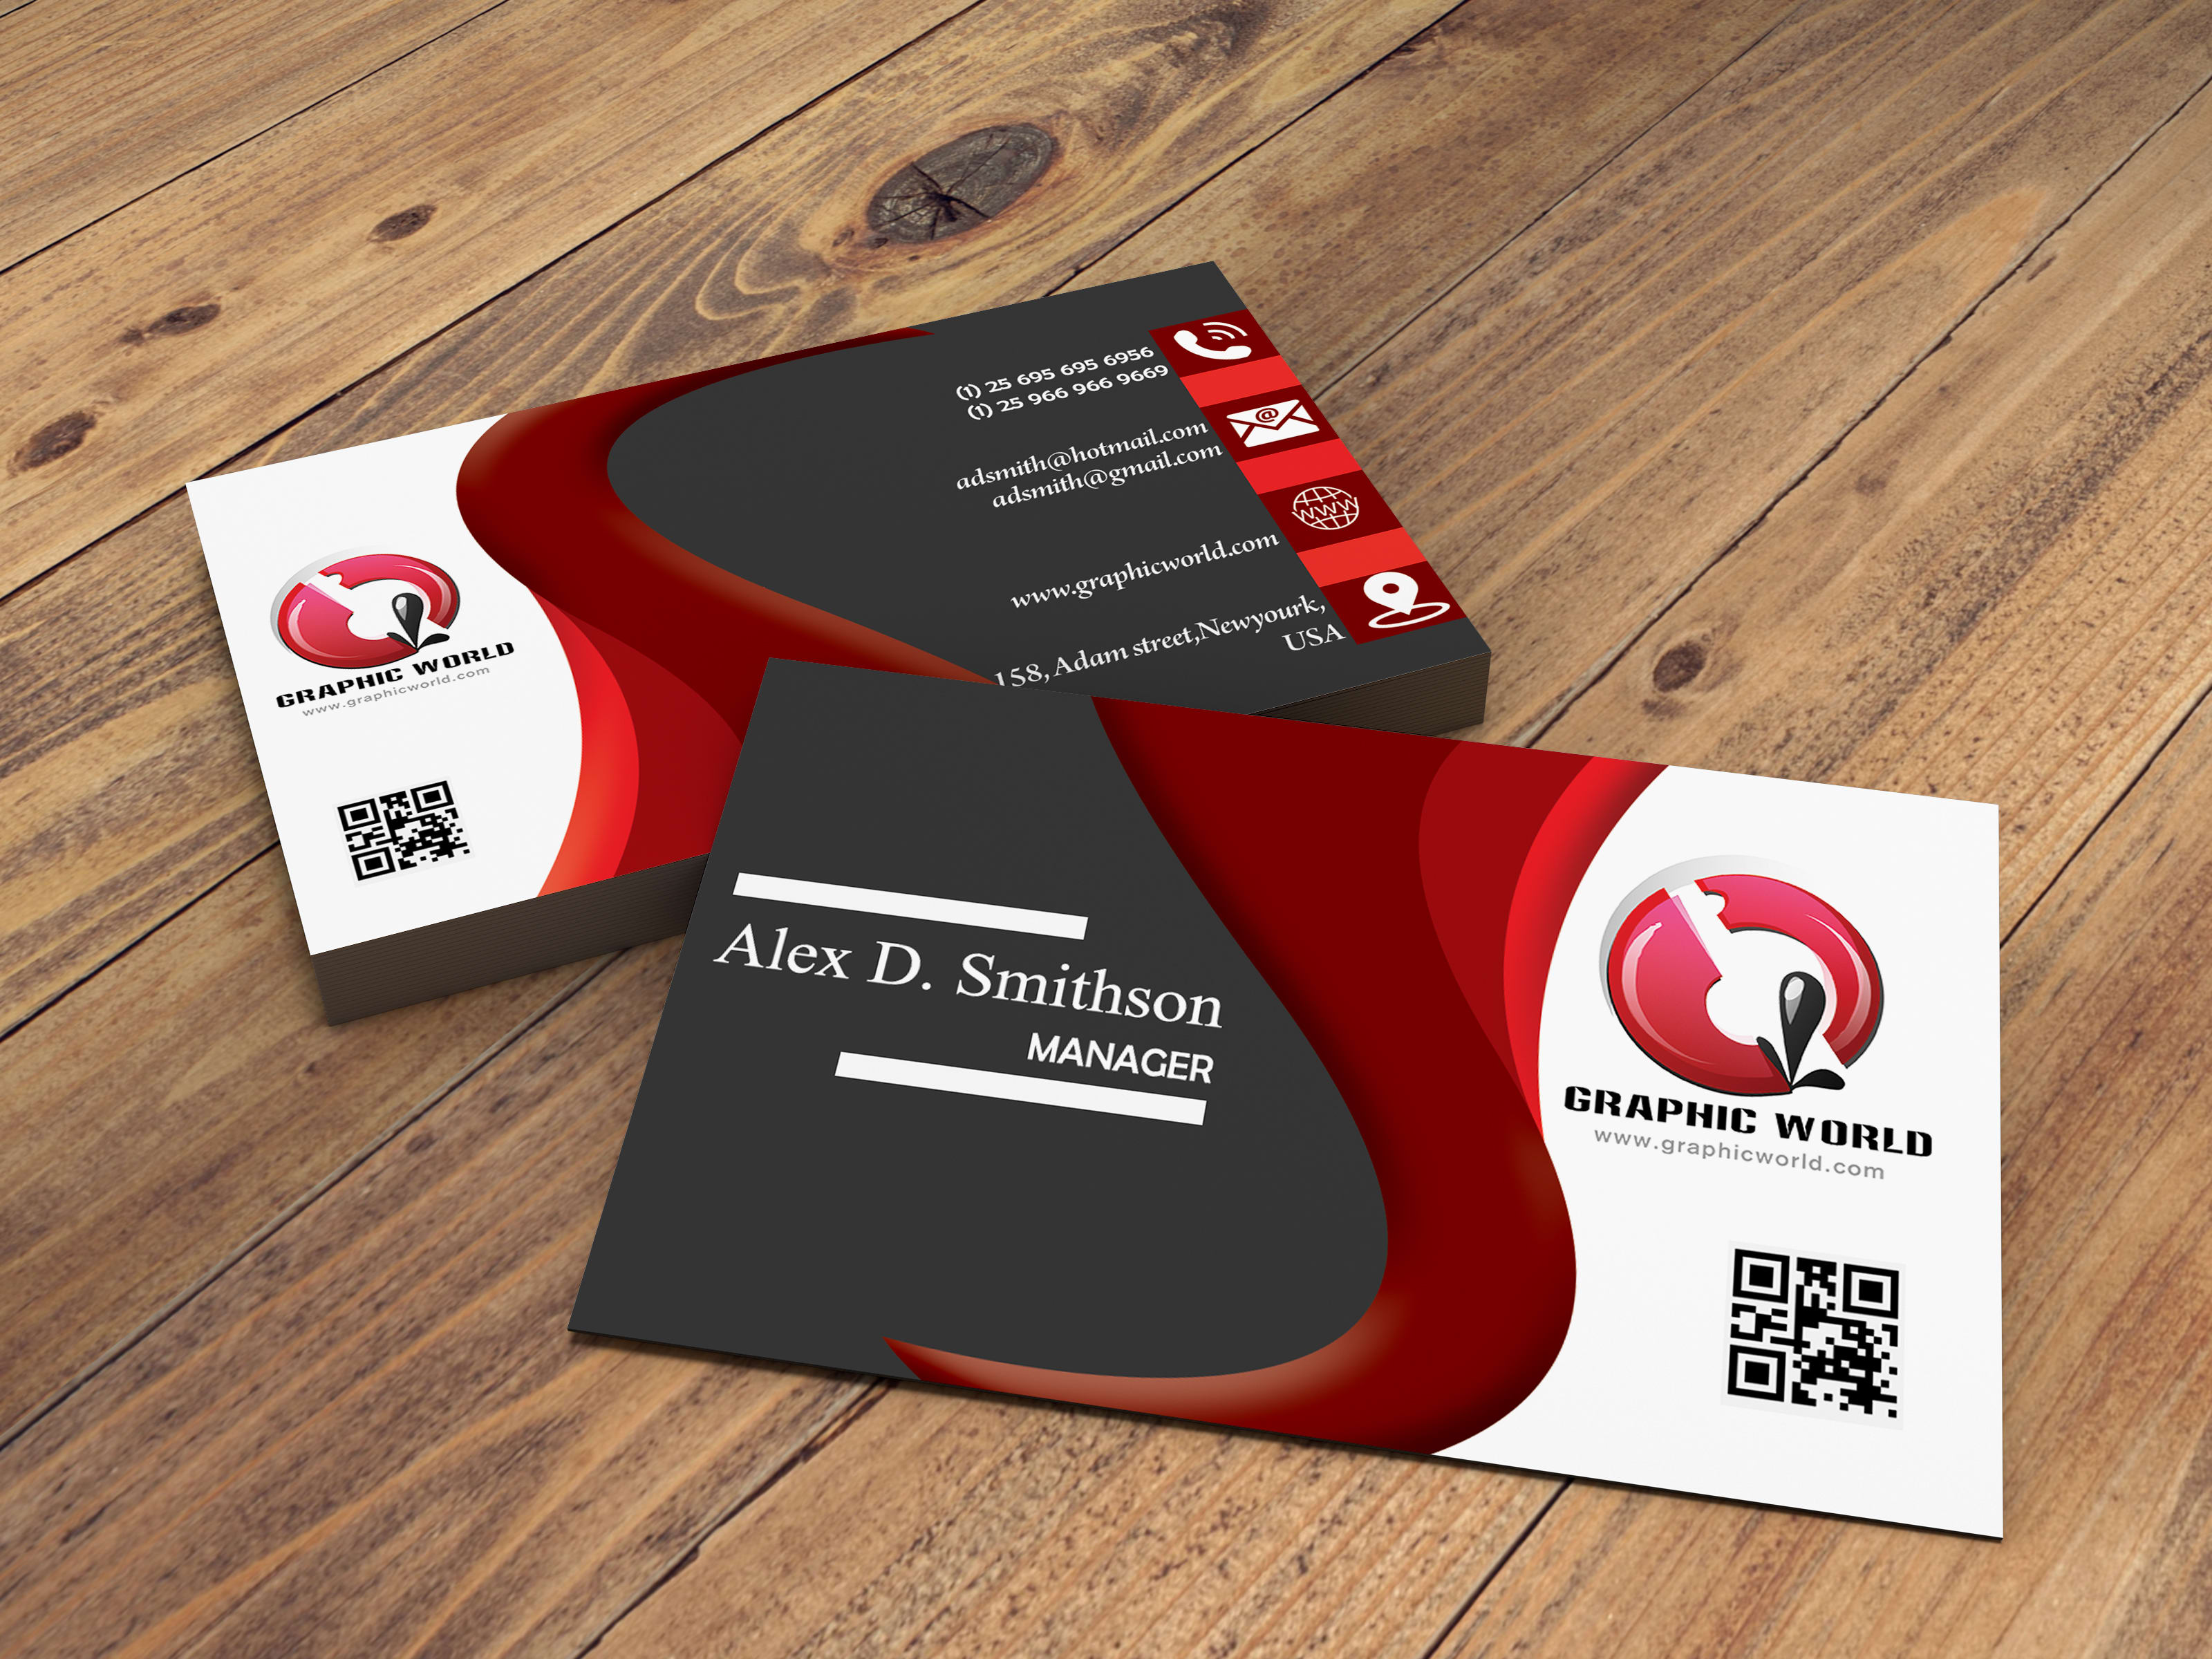 I will design a unique and modern business card